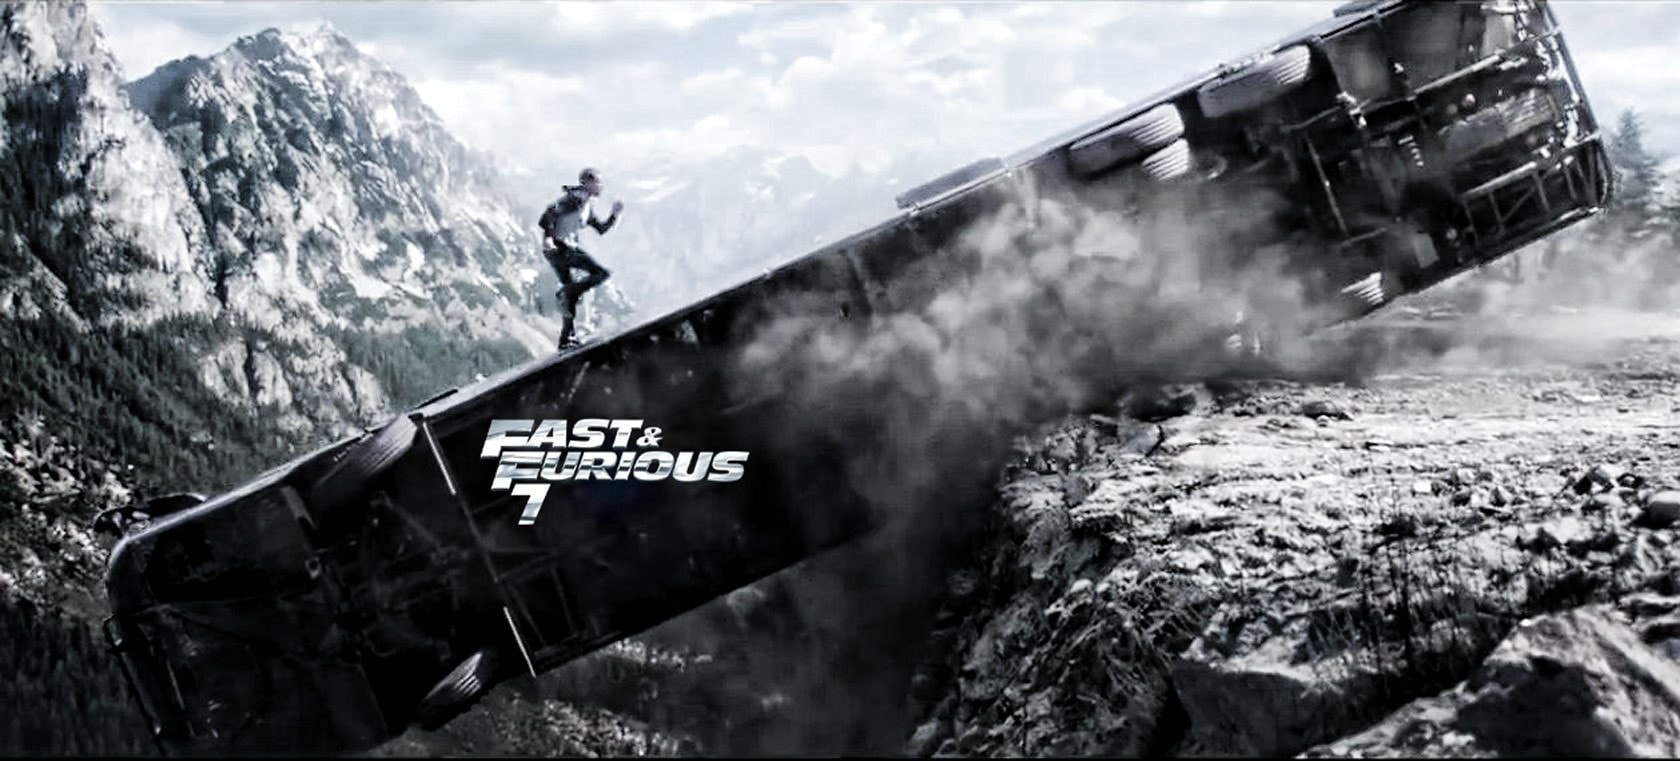 Fast & Furious 7 Desktop wallpapers